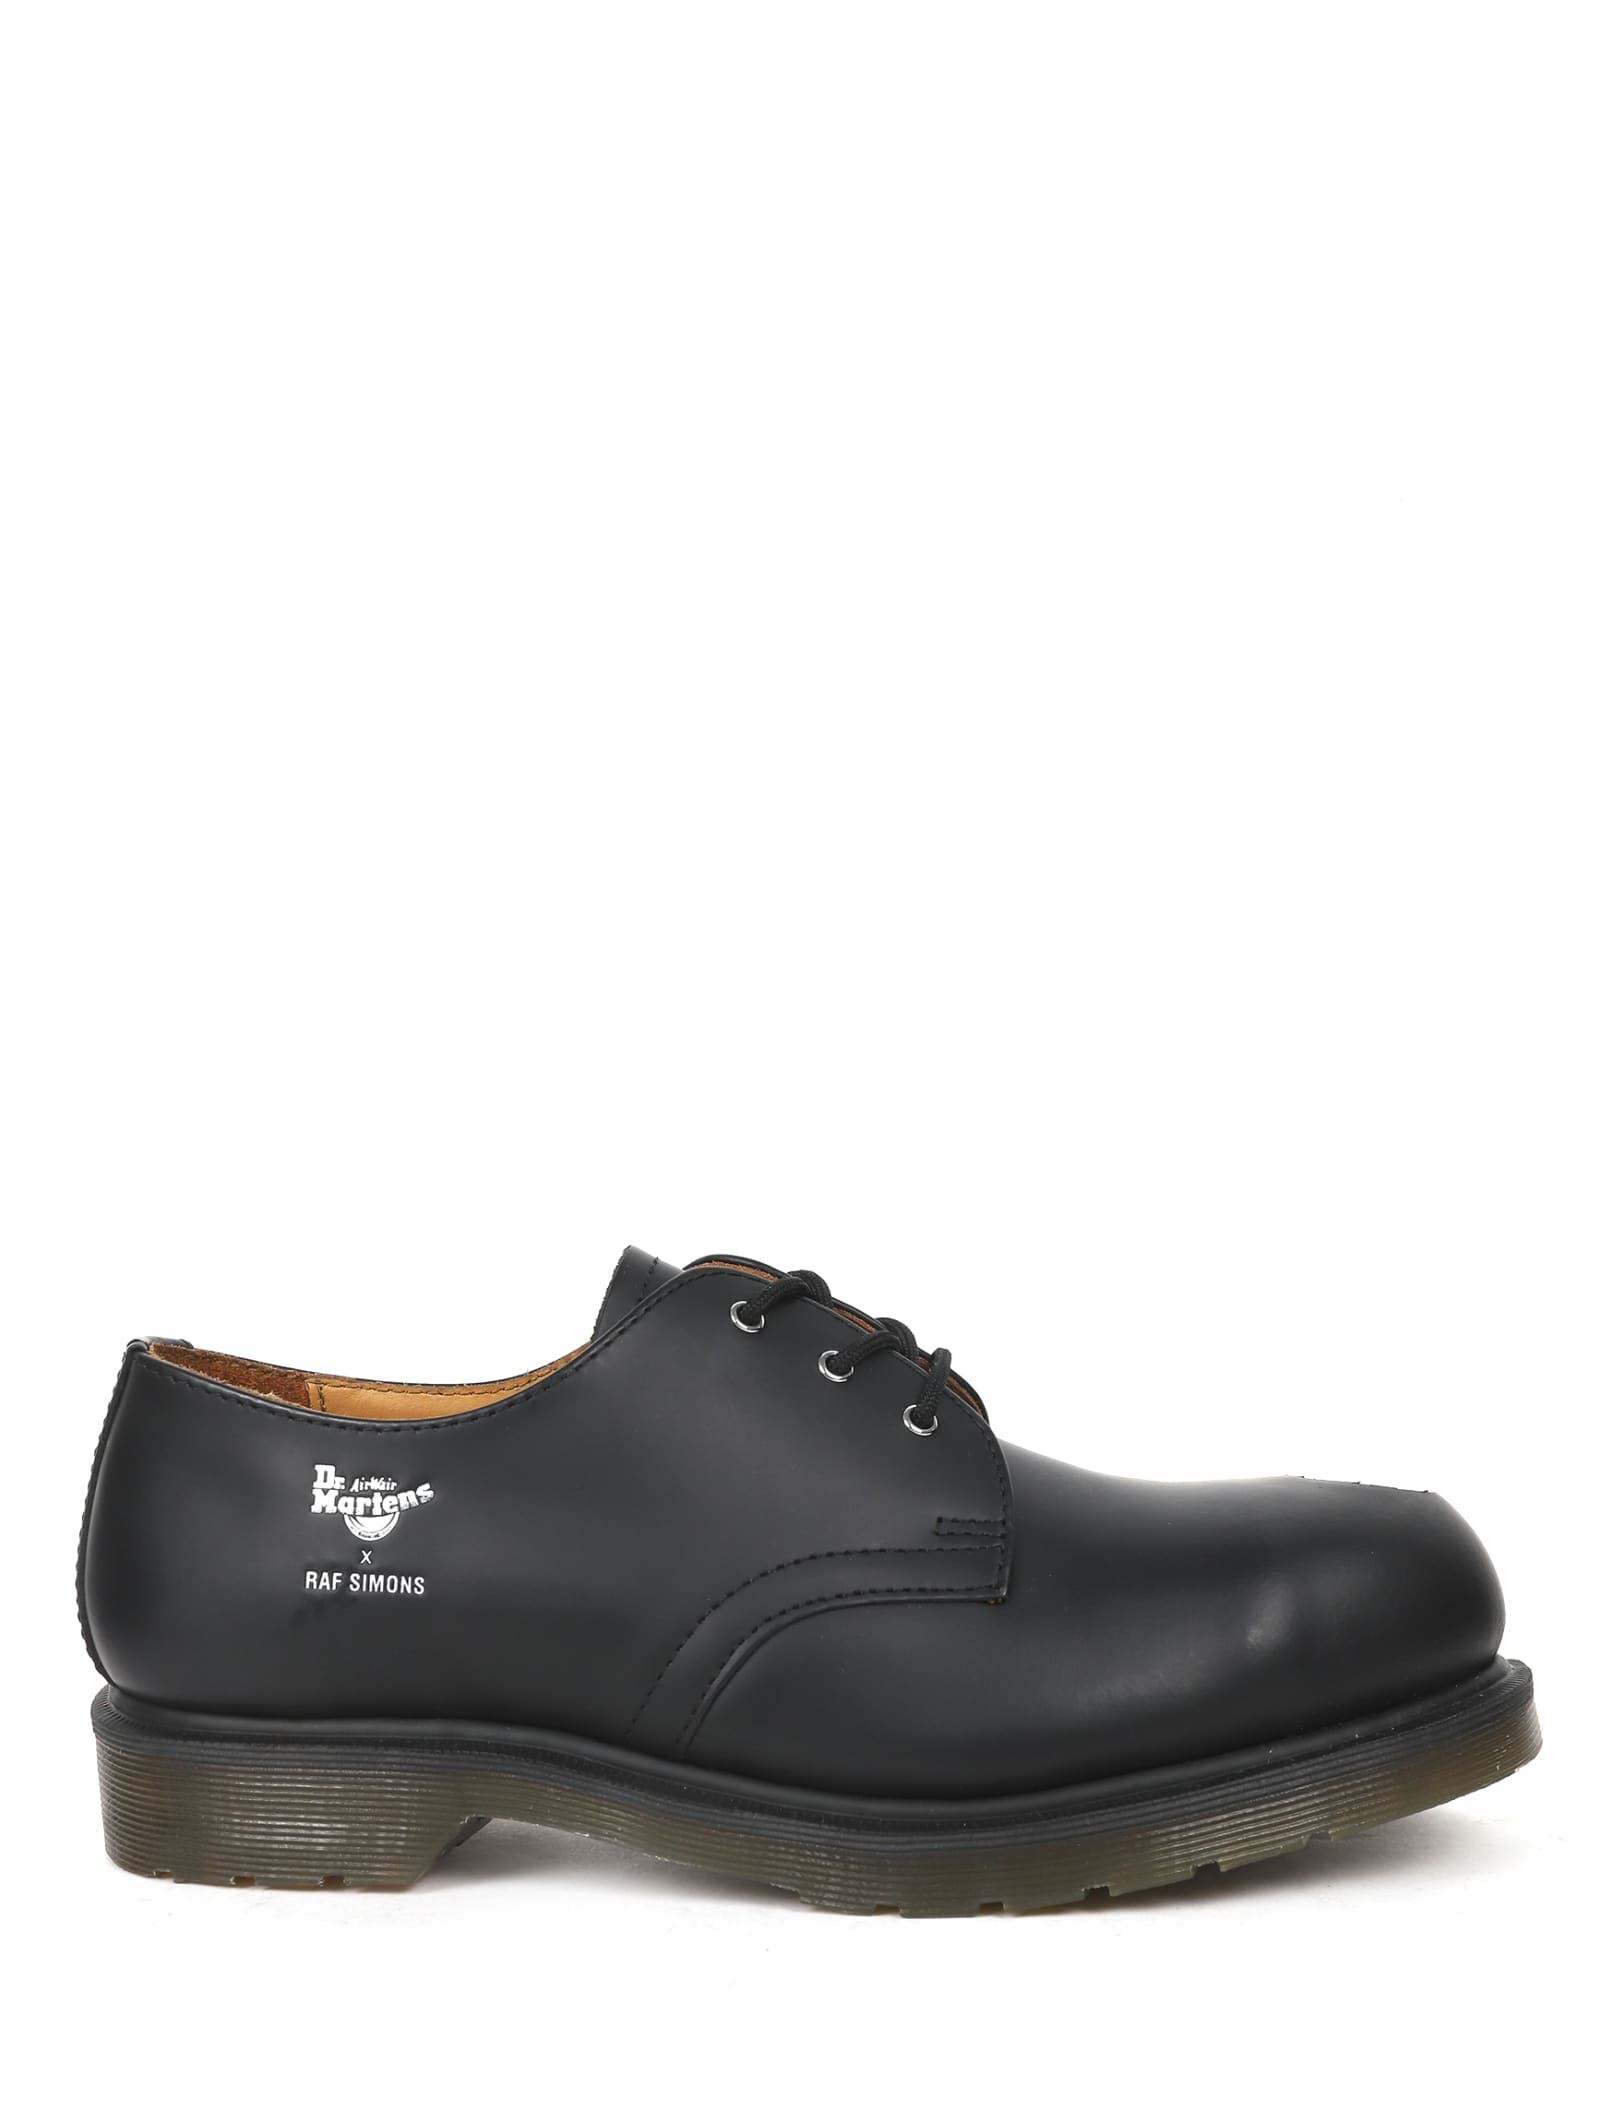 Raf Simons Shoes X DR. MARTENS BLACK SHOES